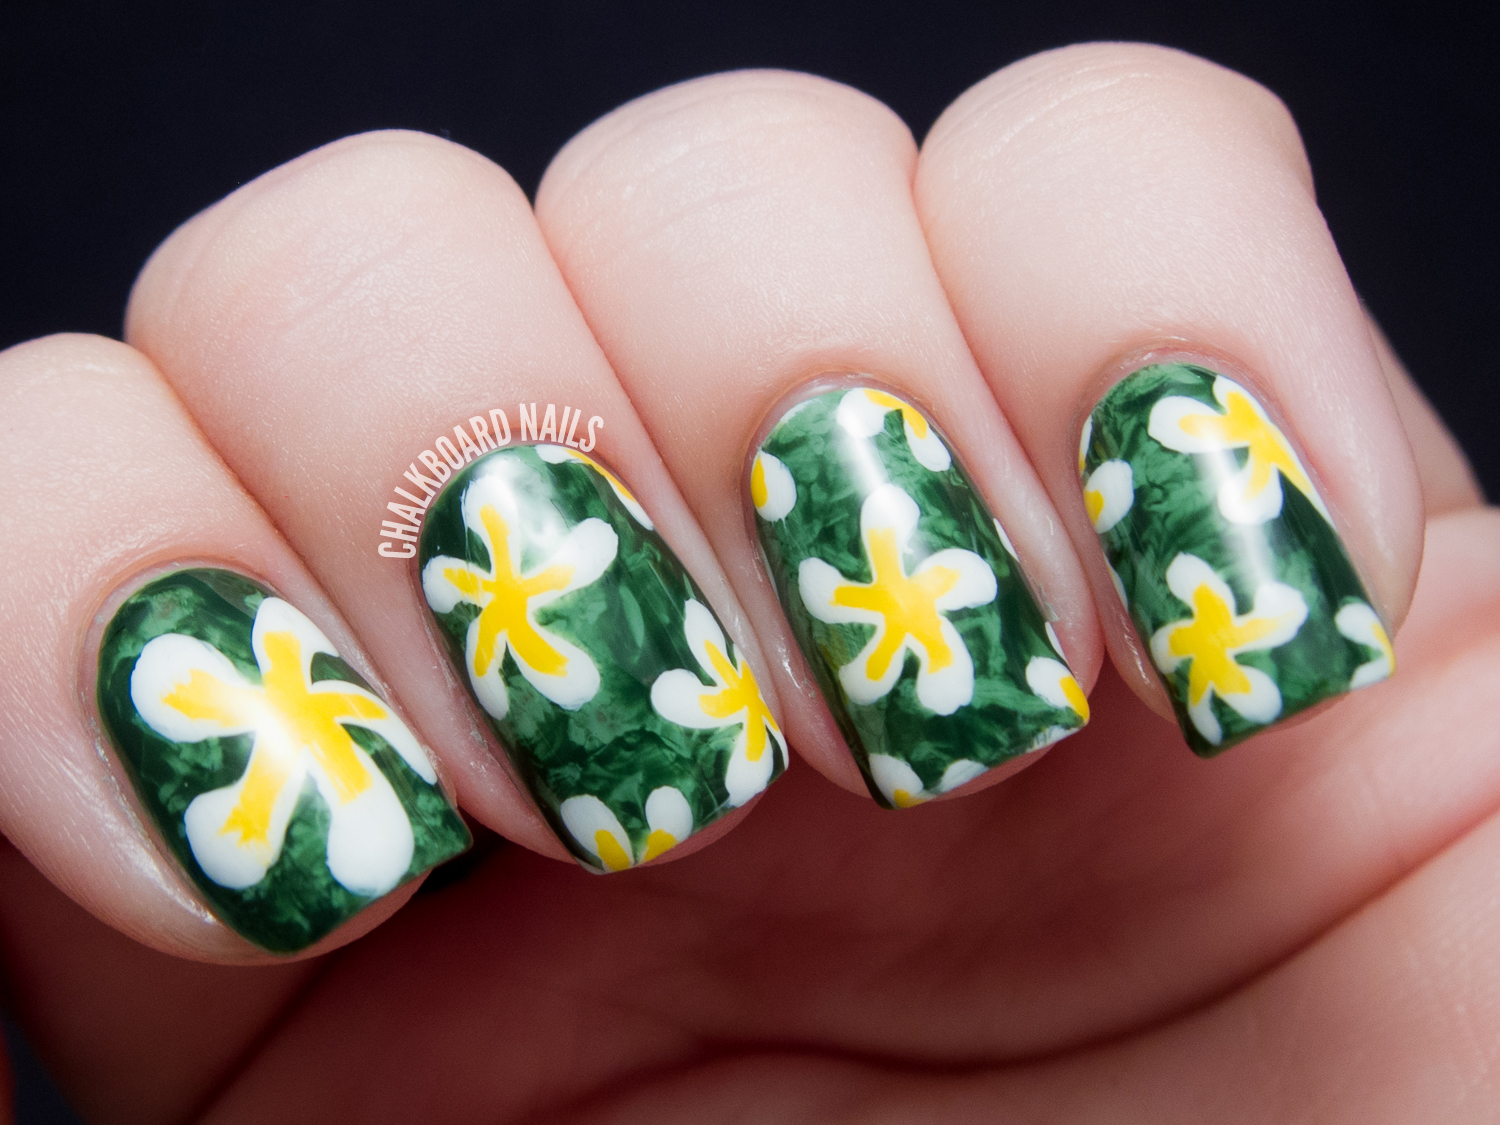 My Original Plan Was To Do Lily Of The Valley Nail Art As I Think Those Flowers Are Really Jaw Droppingly Beautiful But Had A Hard Time Turning It Into